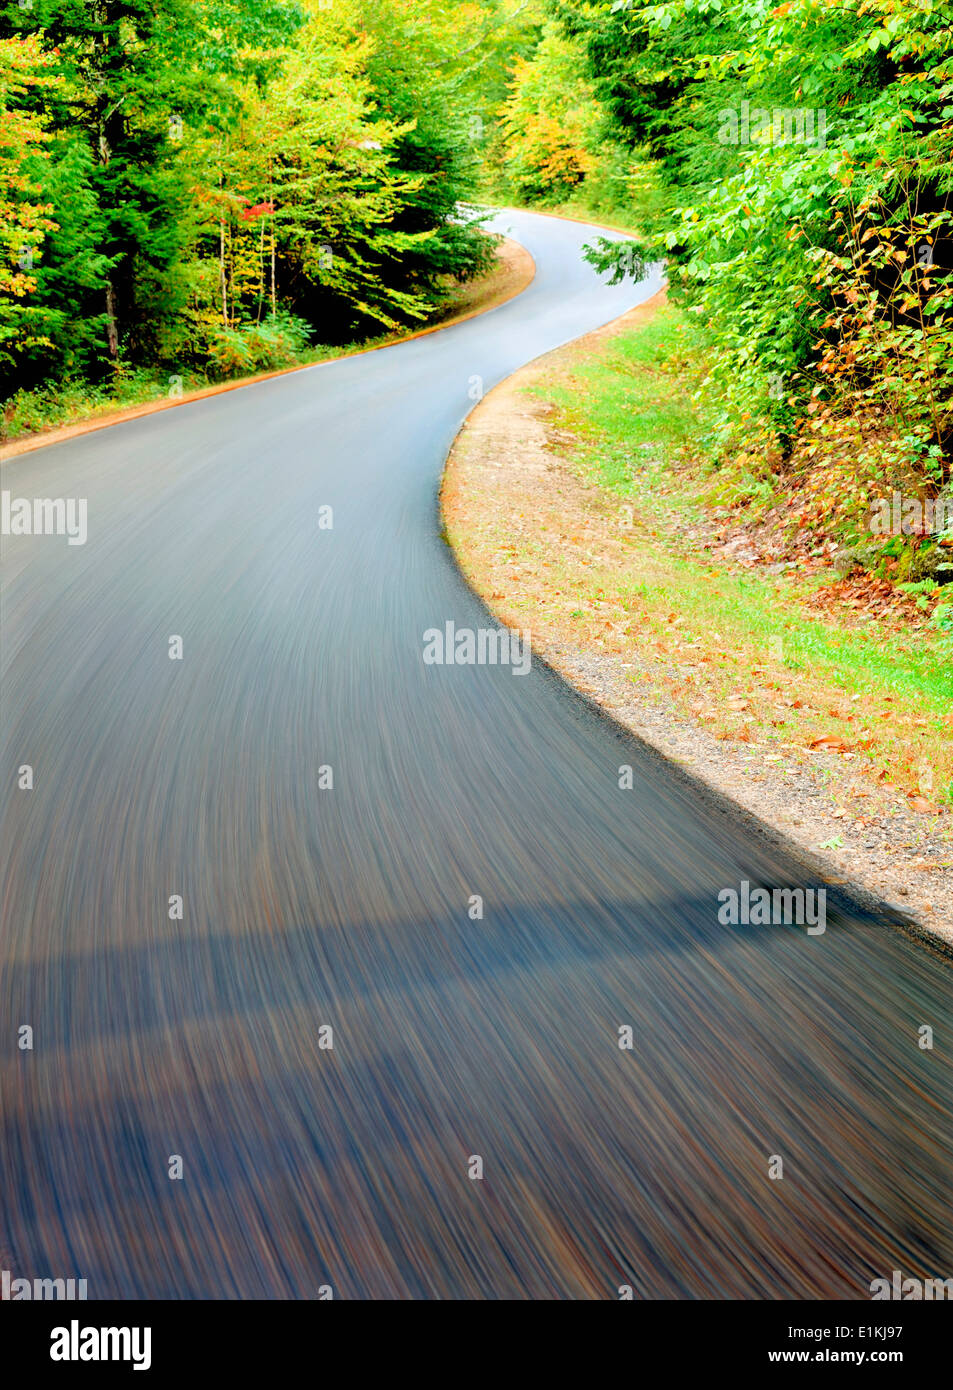 Road blurred motion. - Stock Image